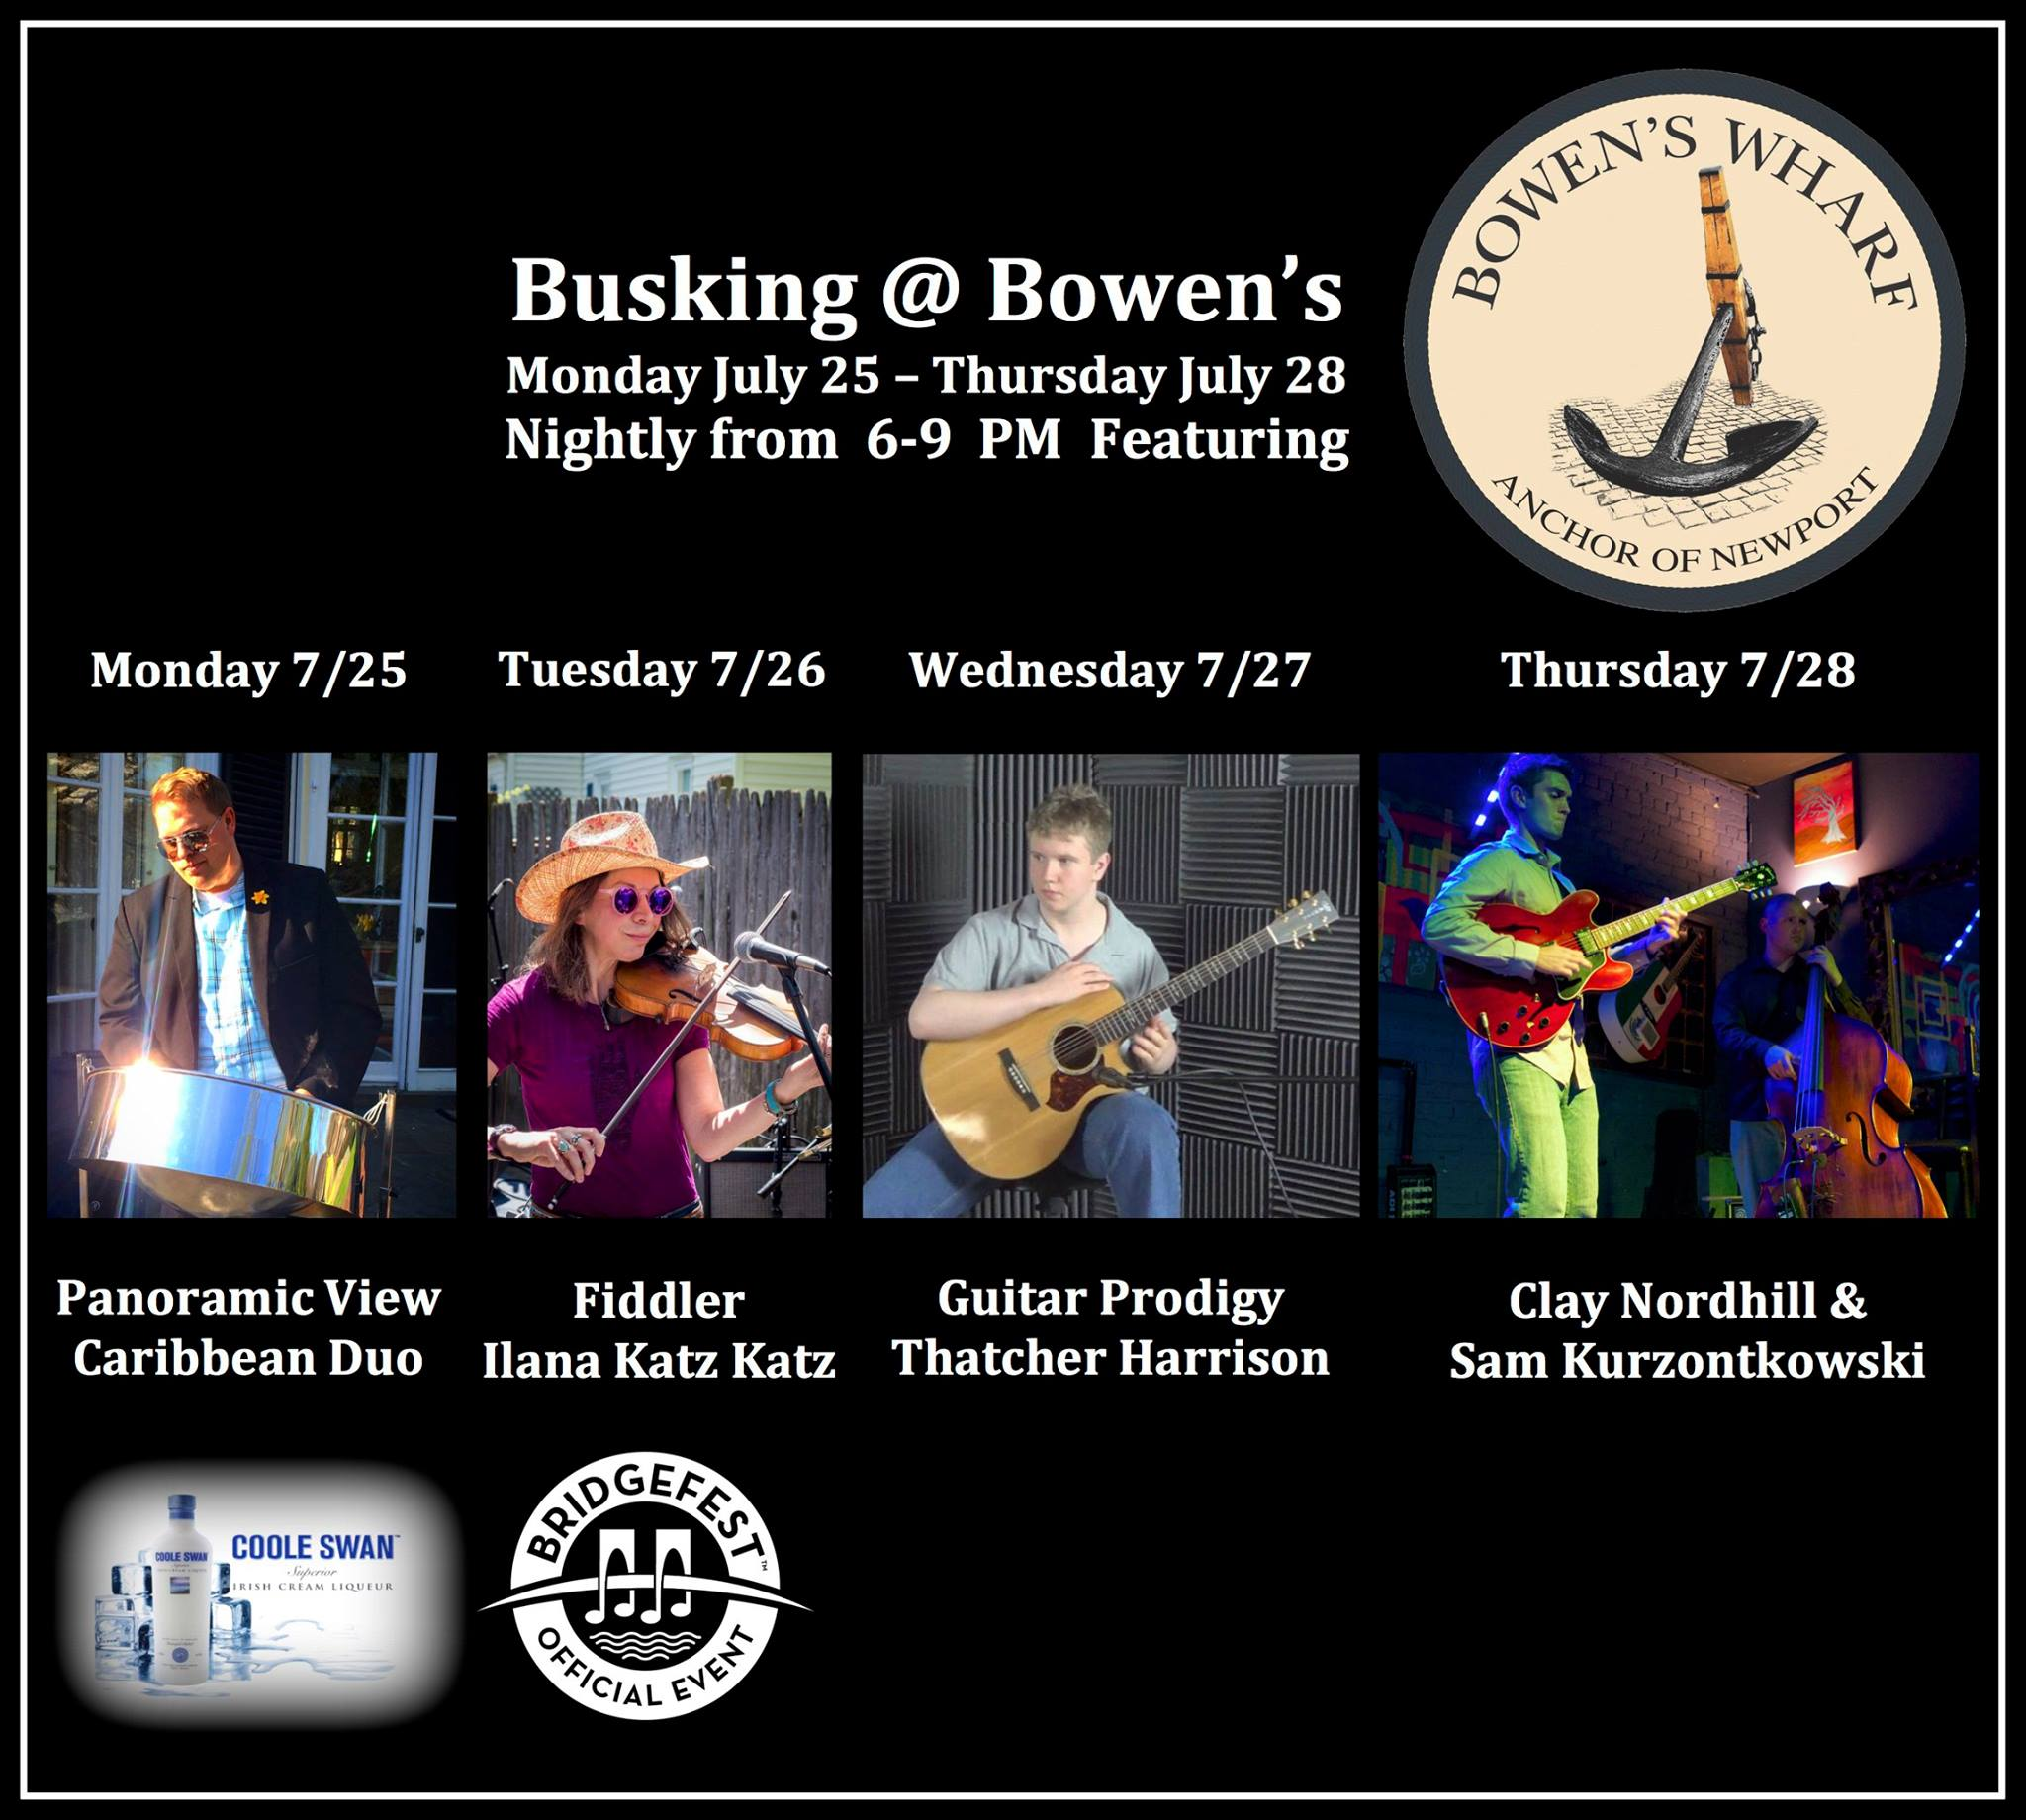 Busking at Bowen's Playbill Featuring Thatcher Harrison